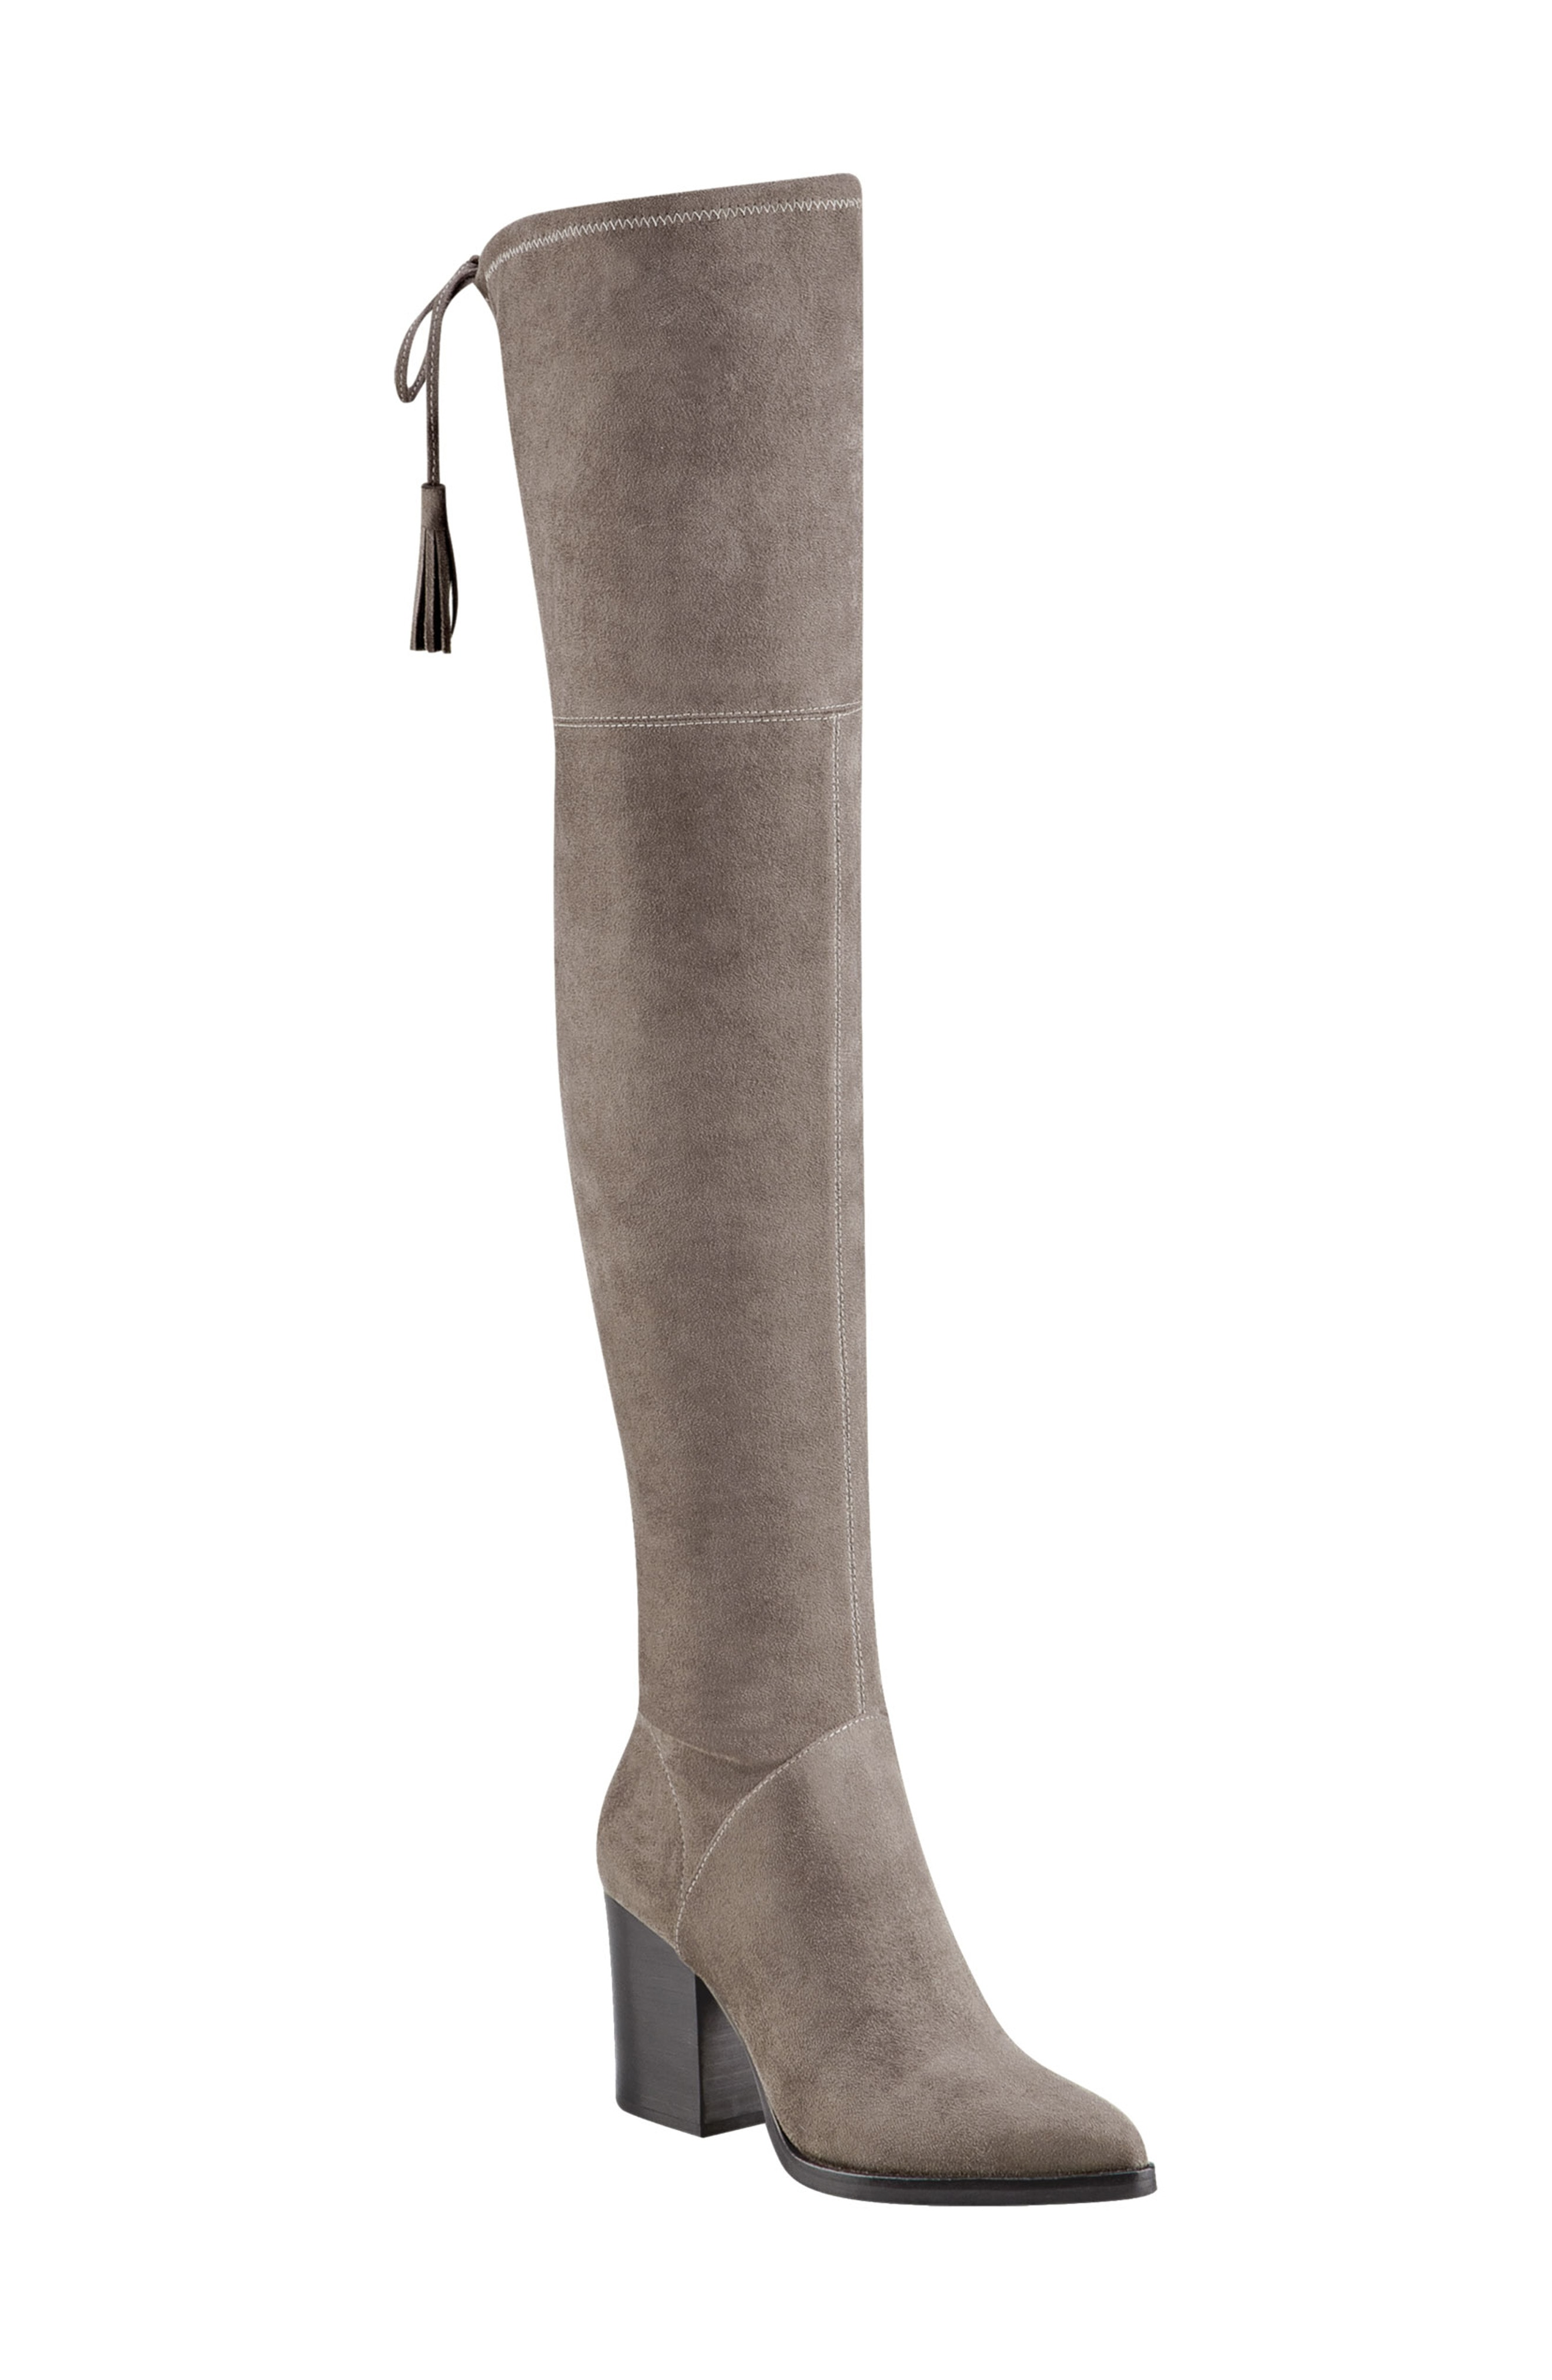 stretch boots | Nordstrom